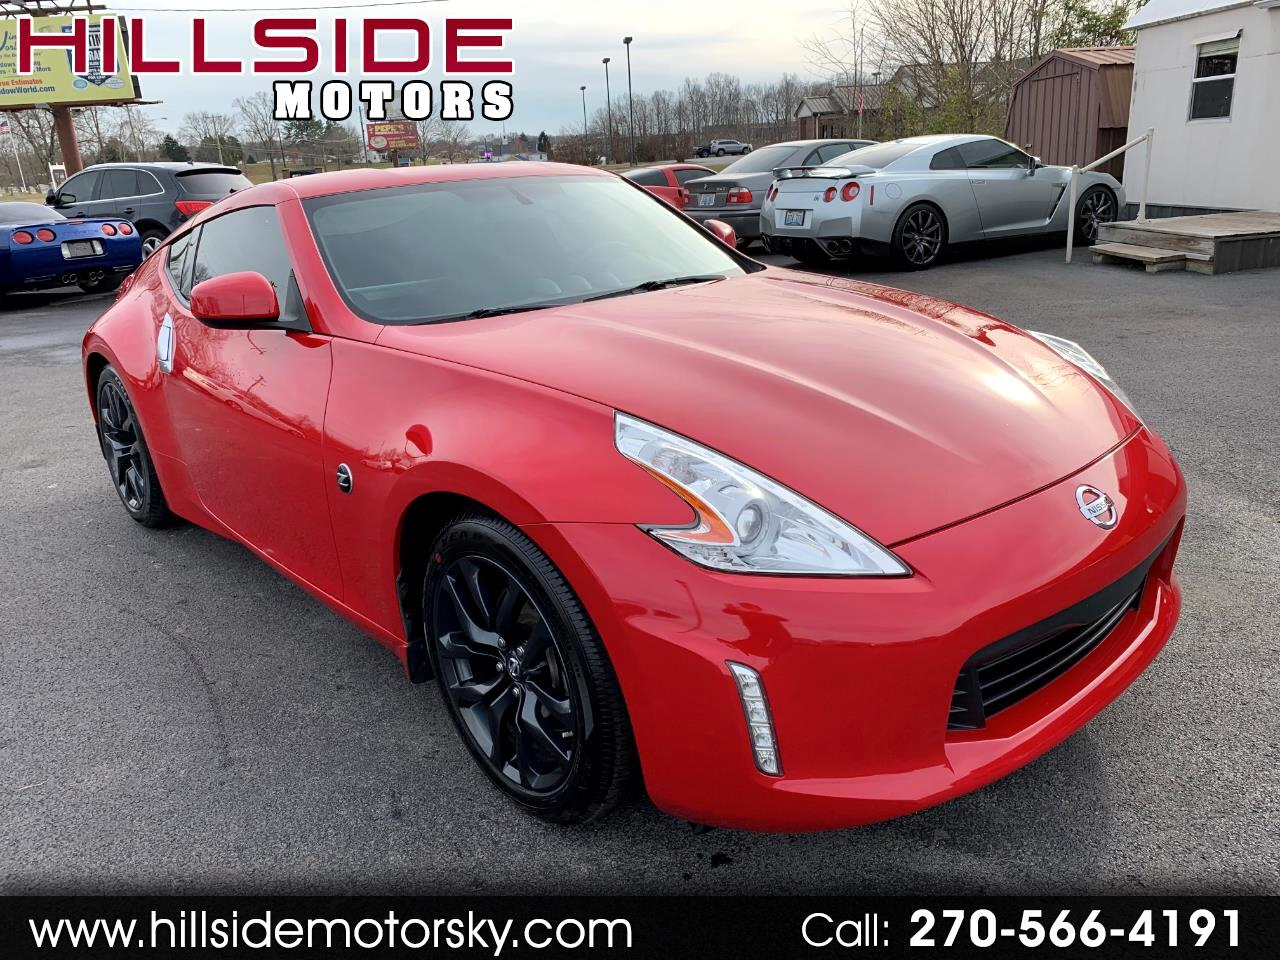 2015 Nissan Z 370Z Coupe 6MT